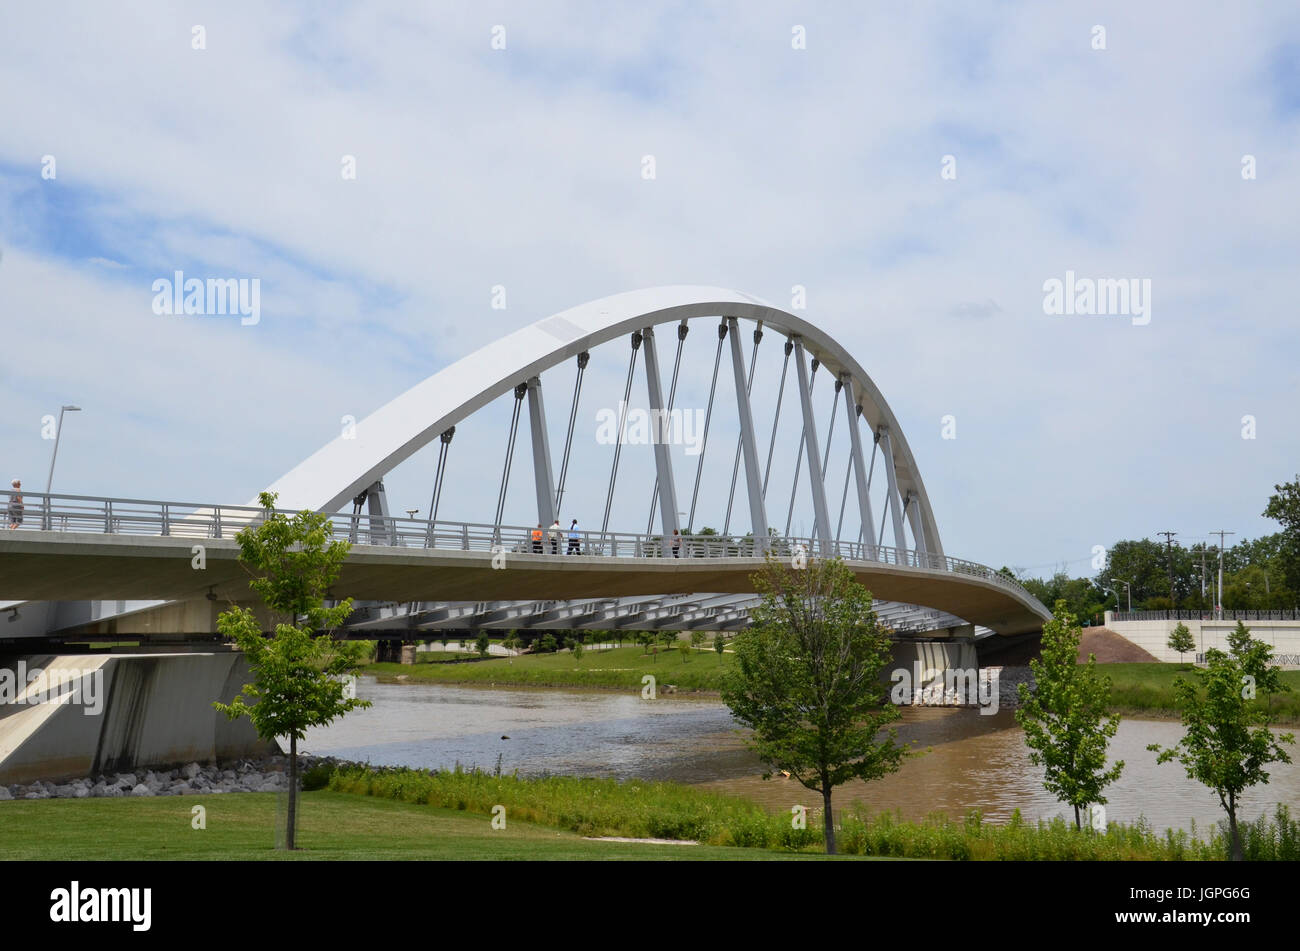 COLUMBUS, OH - JUNE 28: Main Street Inclined Arch Suspension Bridgeat Bicentennial Park is shown on June 28, - Stock Image